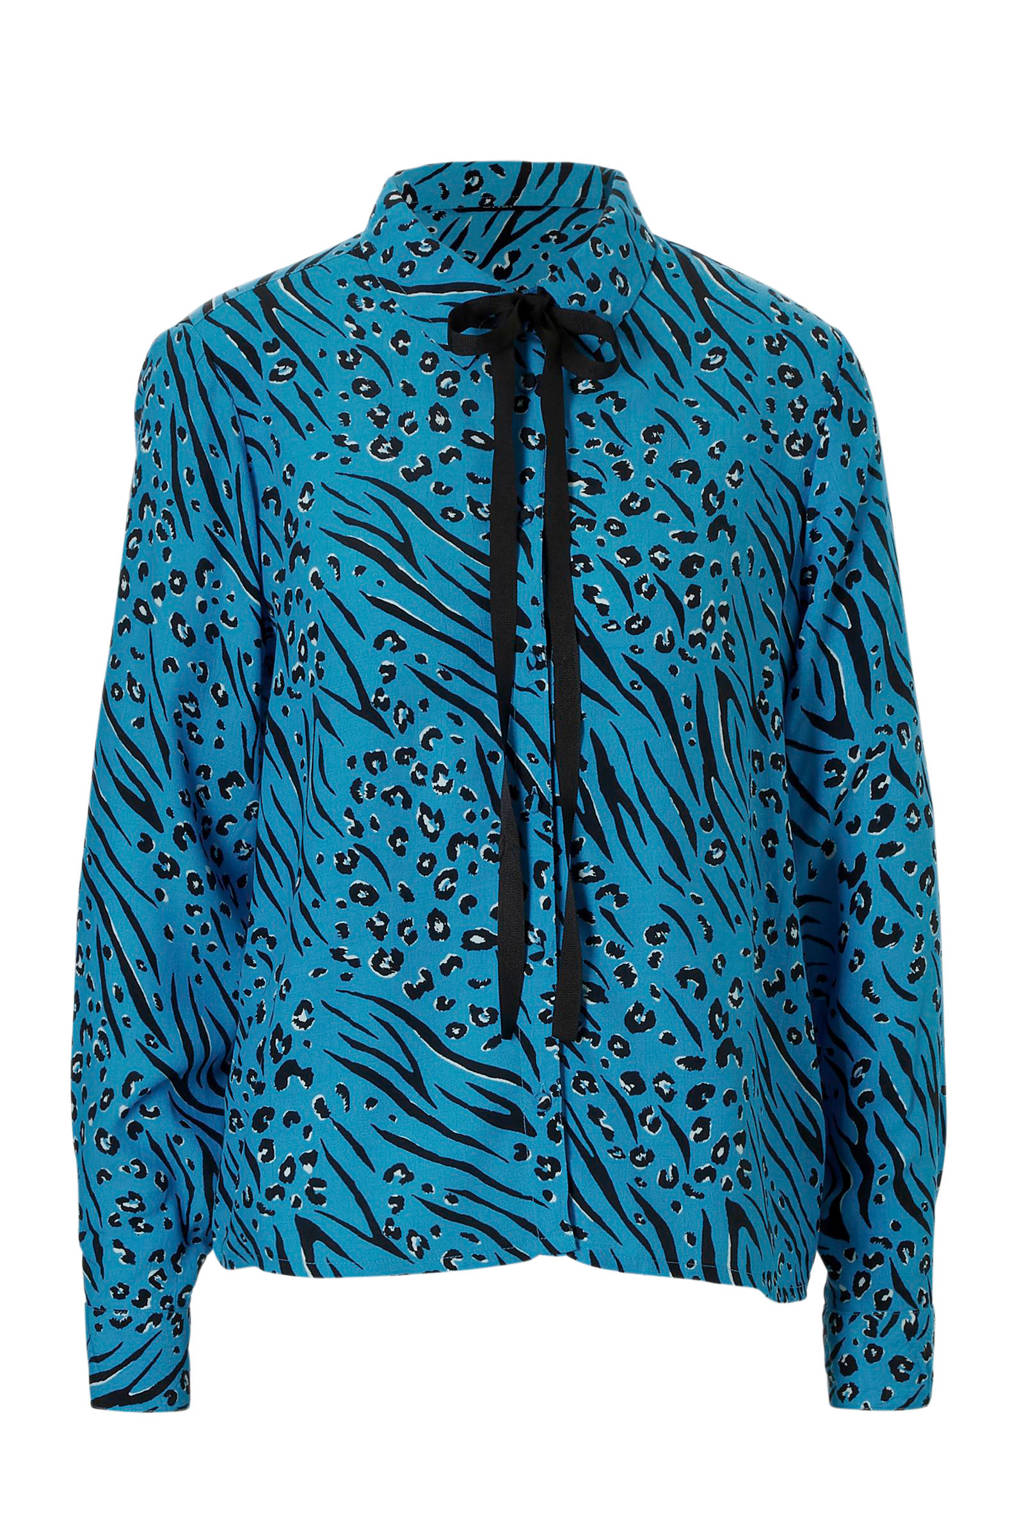 ONLY blouse met all over print en strik detail, Blauw/zwart